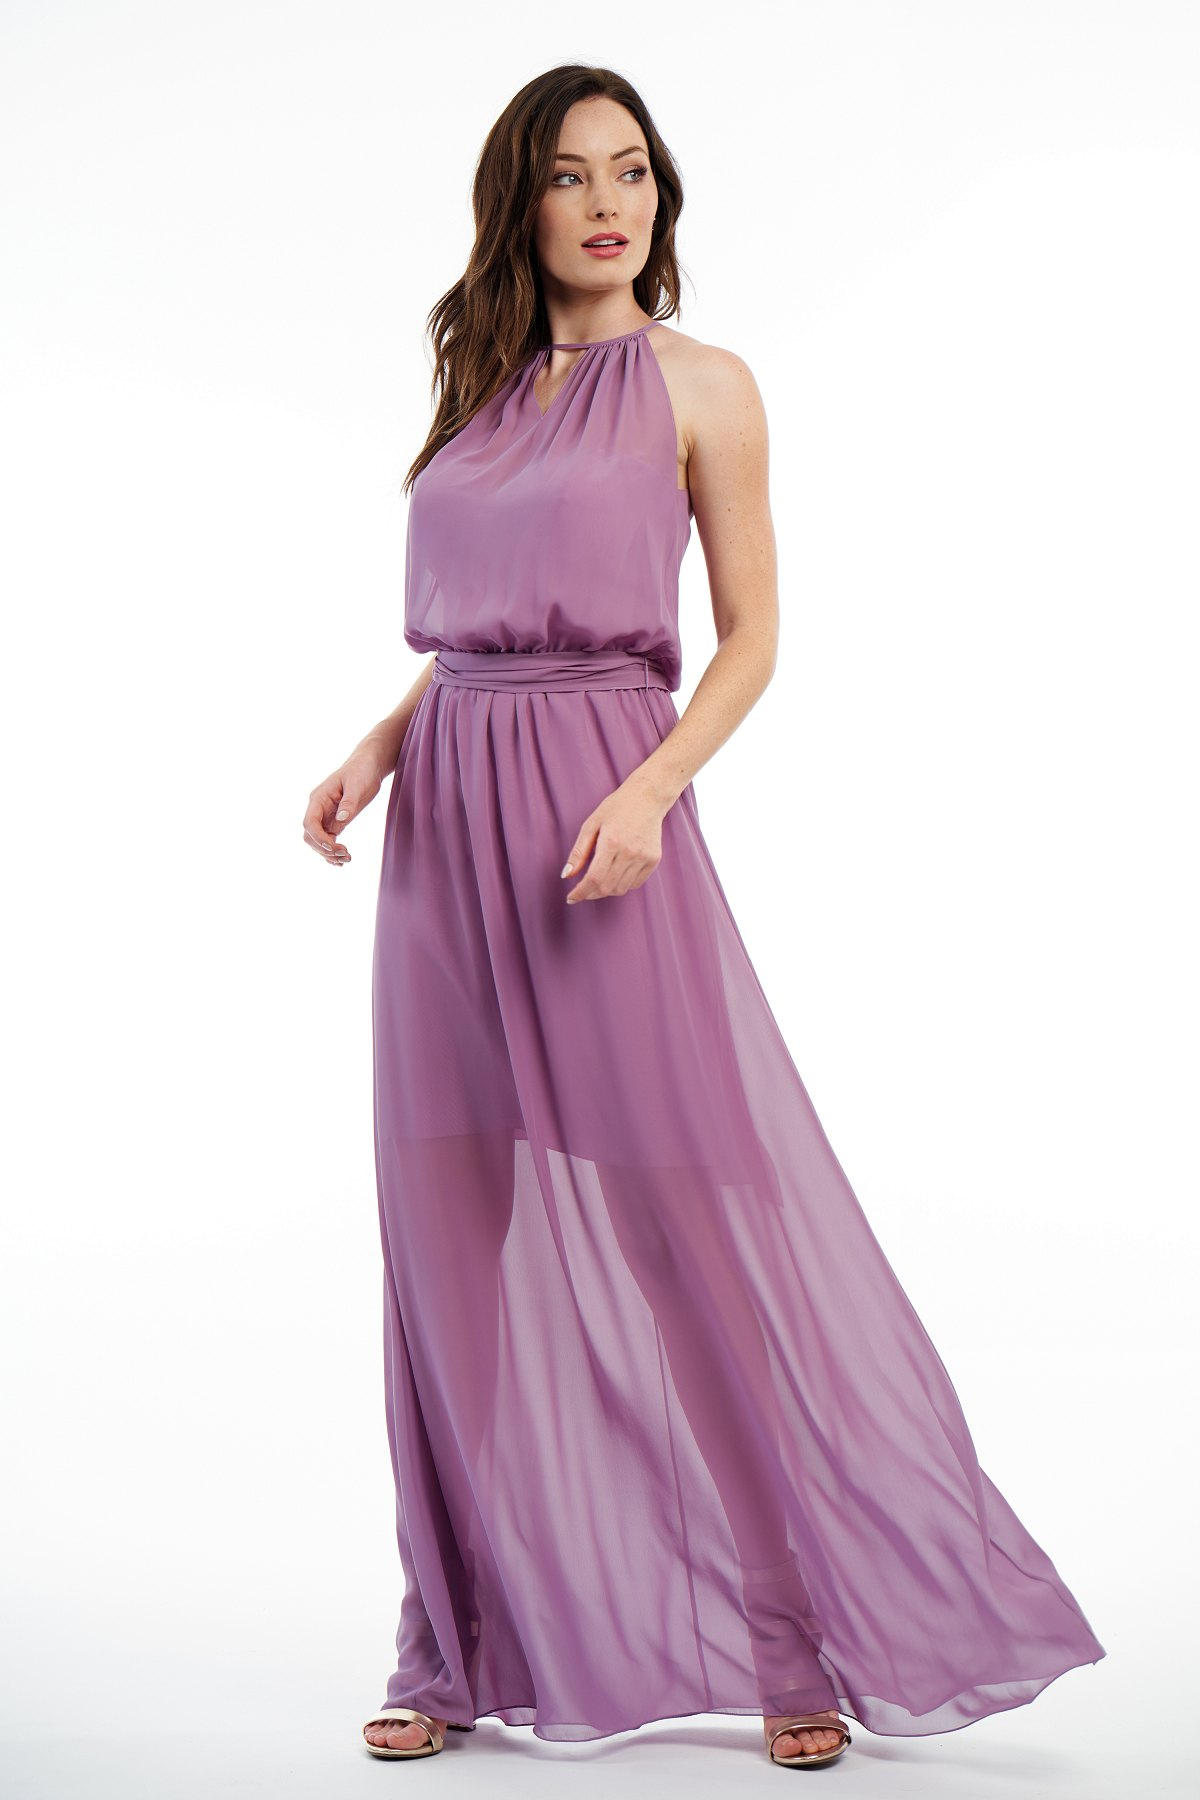 P216007 -  Gorgeous charlotte chiffon floor length bridesmaid dress with a keyhole high neckline and beautiful detailed gathers throughout the dress. A short base skirt underneath the flowy outer layer skirt and a belt that wraps around the waist to create a bow in the back.    Available in  41 colors